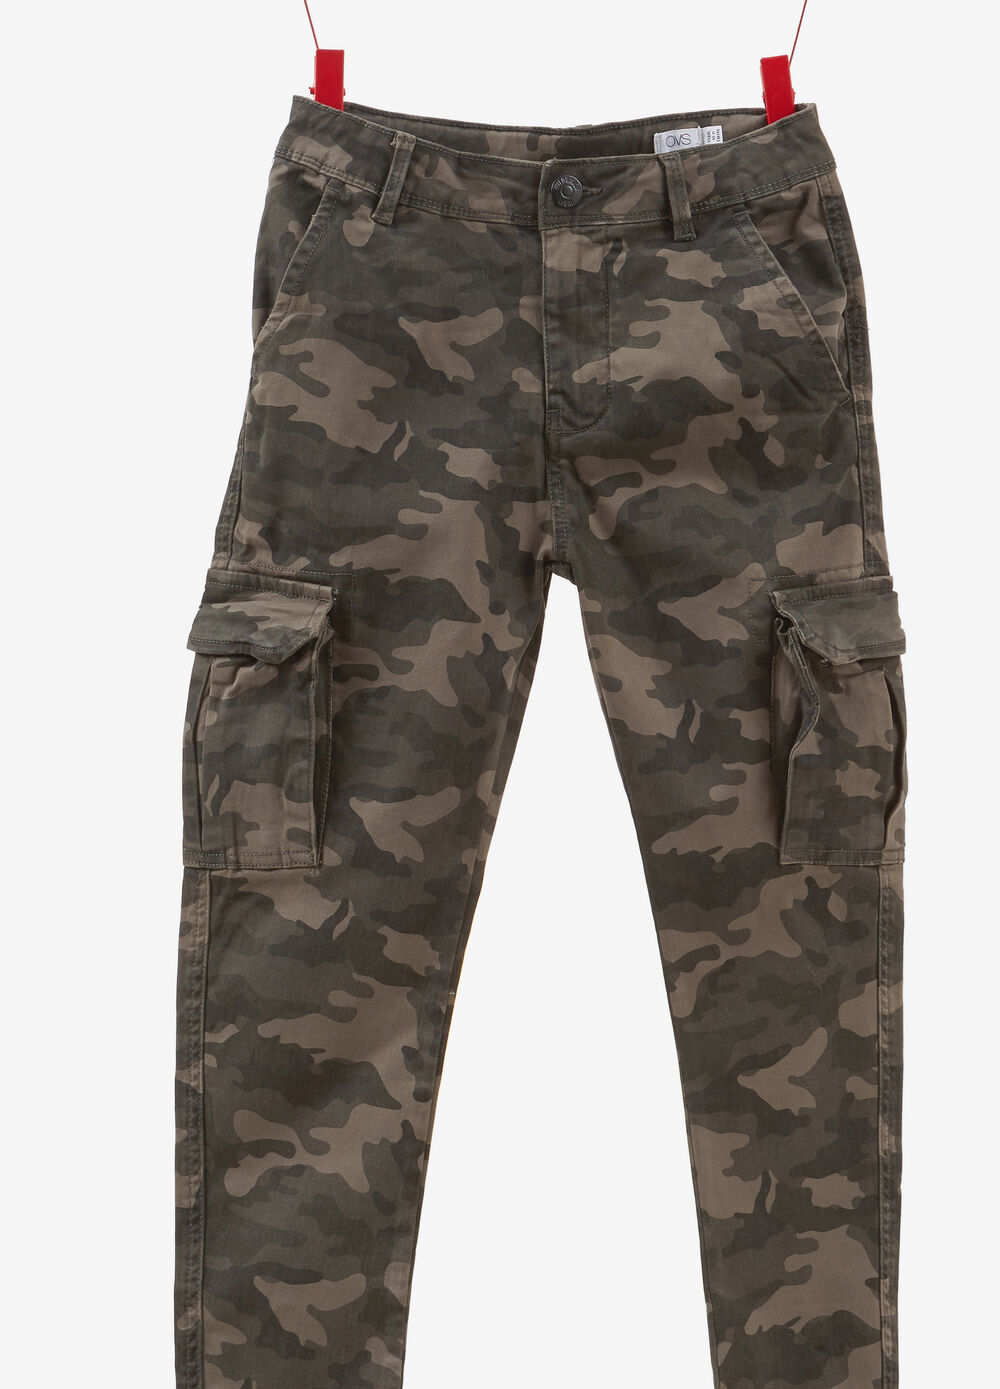 Camouflage cargo trousers in 100% cotton